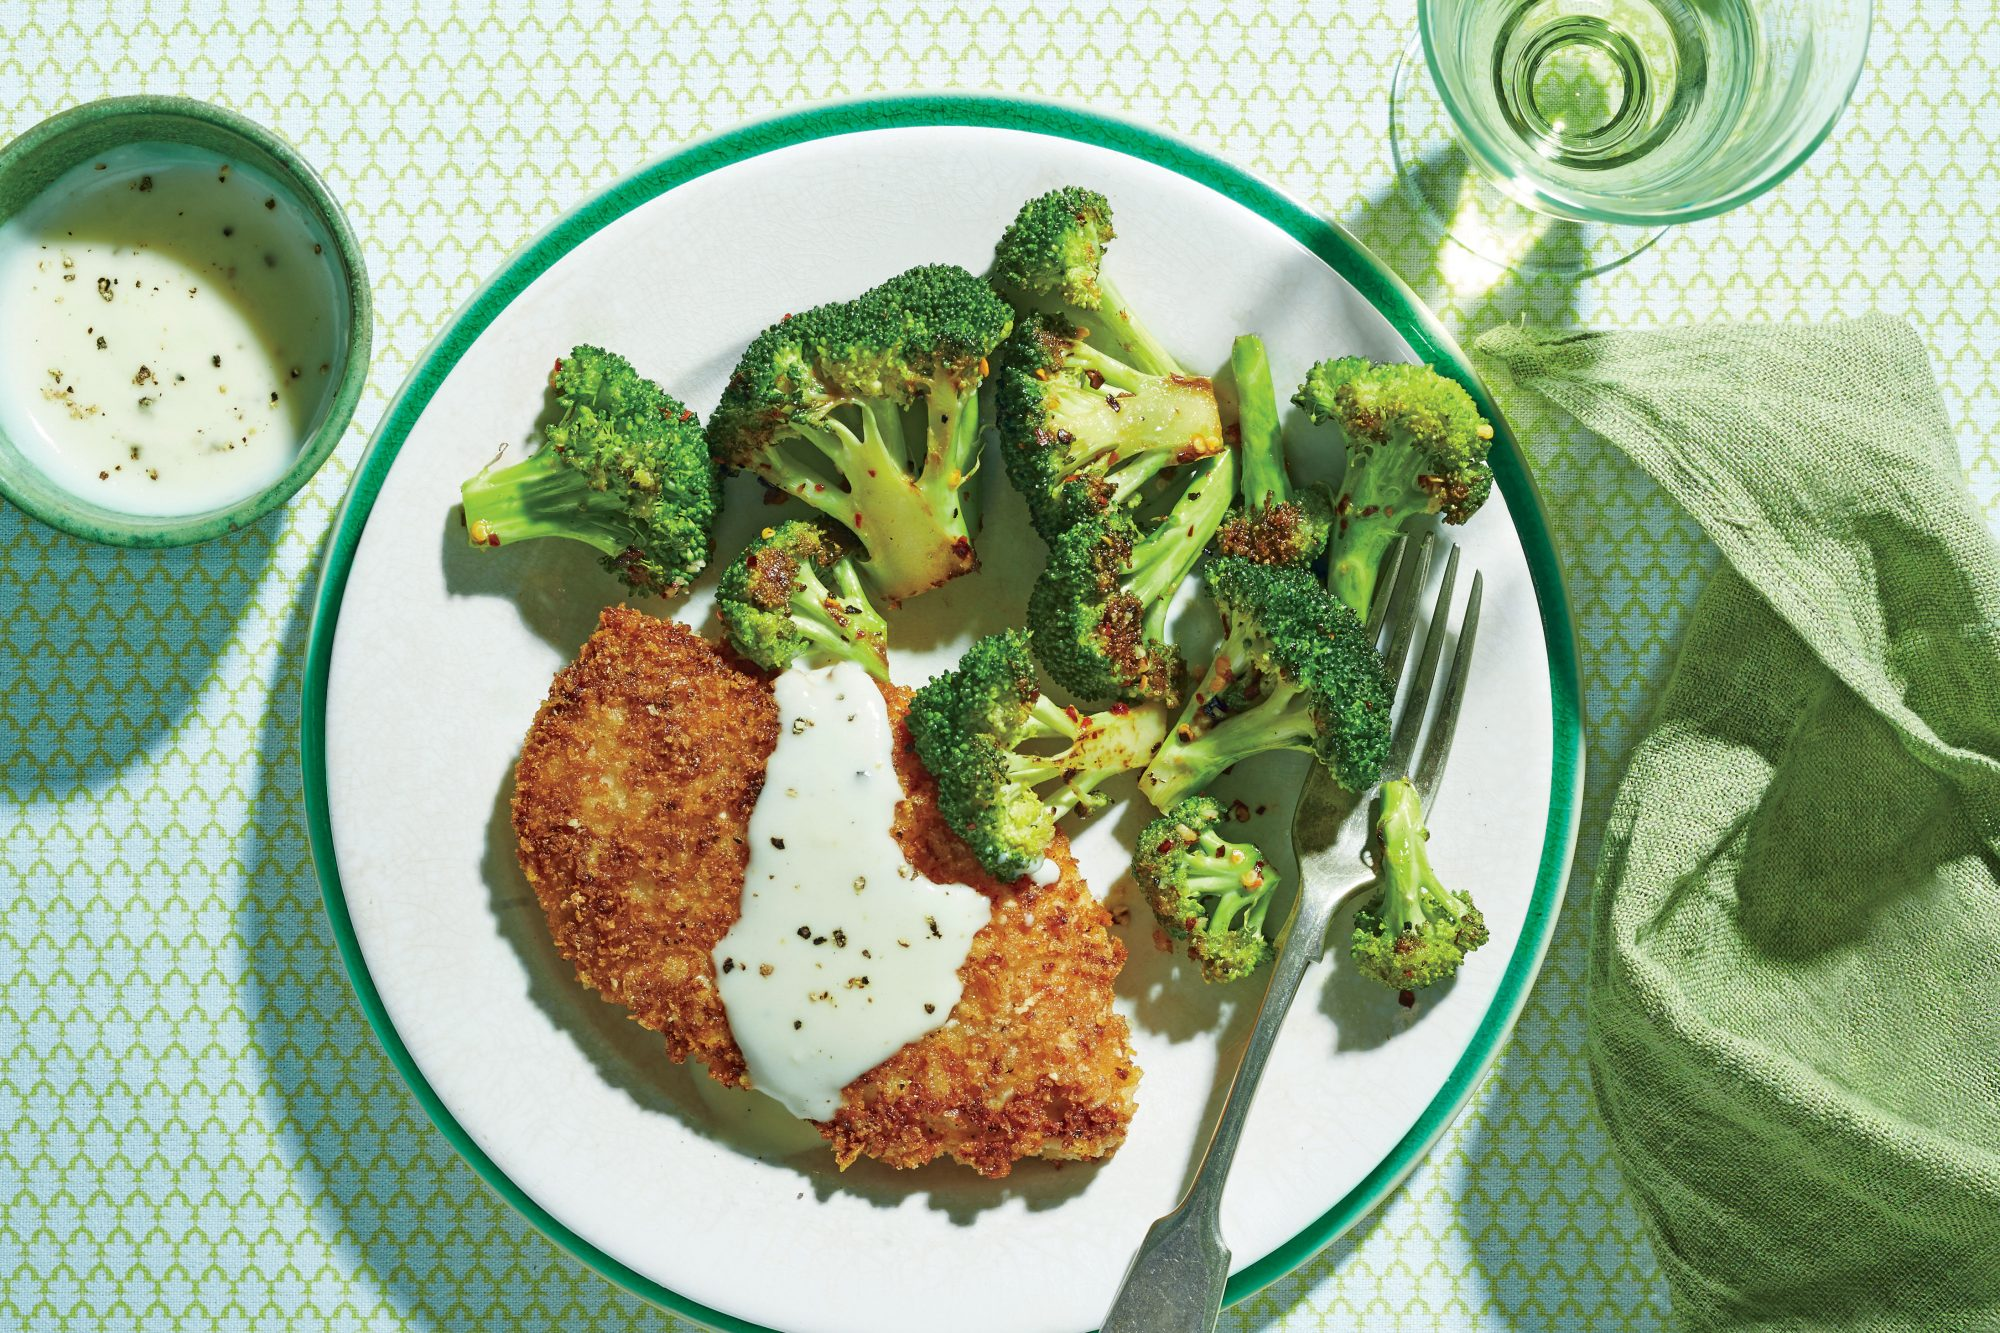 Broccoli Is Somehow Everyone's Favorite Vegetable Now